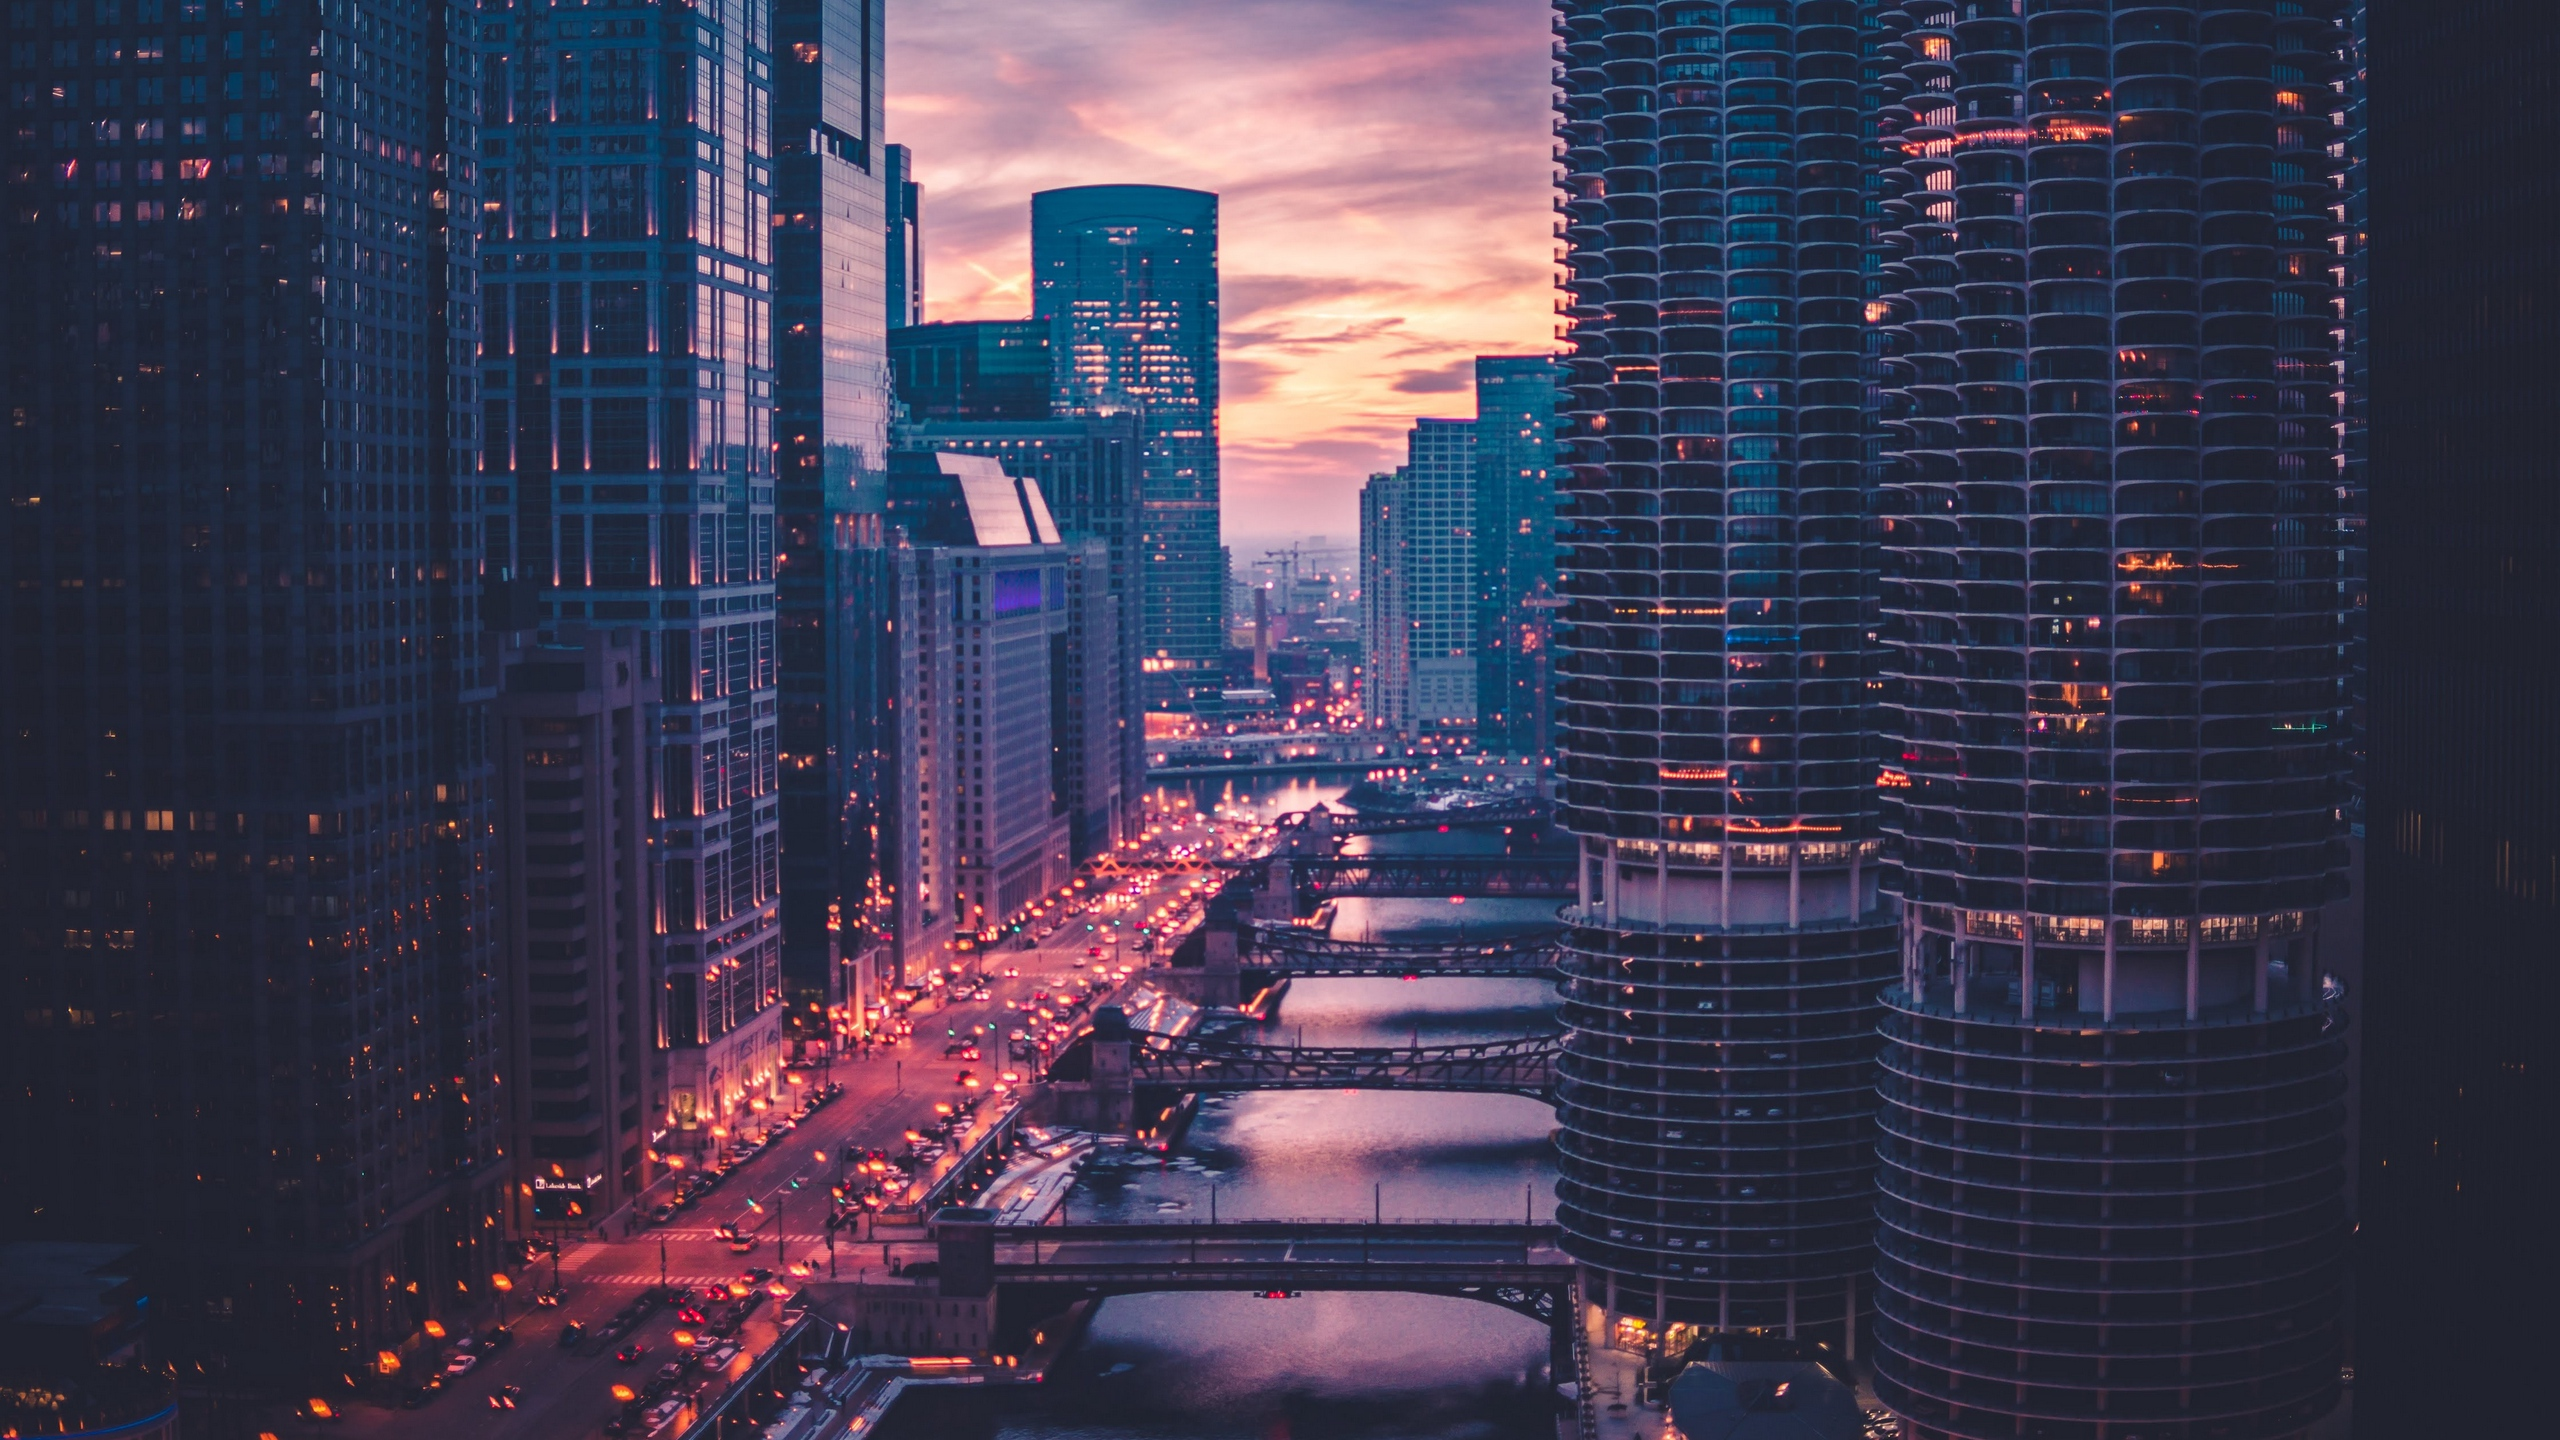 Wallpaper of Chicago, Skyscrapers, Bridges, Traffic background & HD image